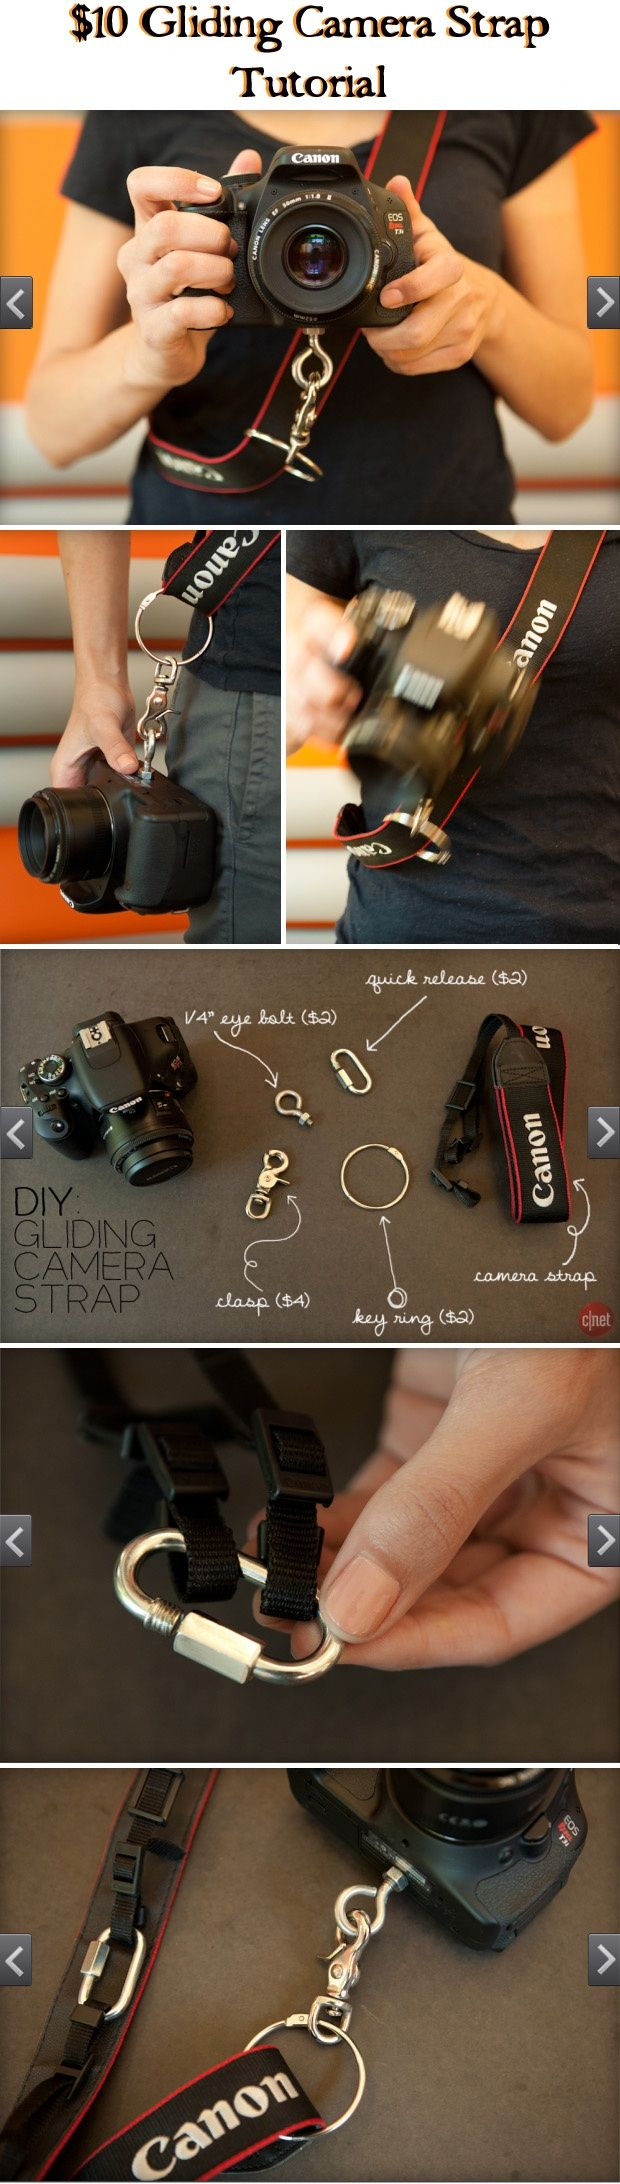 Photography Tips | Learn how to take better photos | CAMERA ACCESSORIES :: $10 DIY Gliding Camera Strap (VIDEO) Tutorial :: These straps go for 60+ bucks. Learn how to make one for less than 10! Super easy! Now you can wear your camera across your body (not weighing on your neck) & have it at the ready w/ ease!